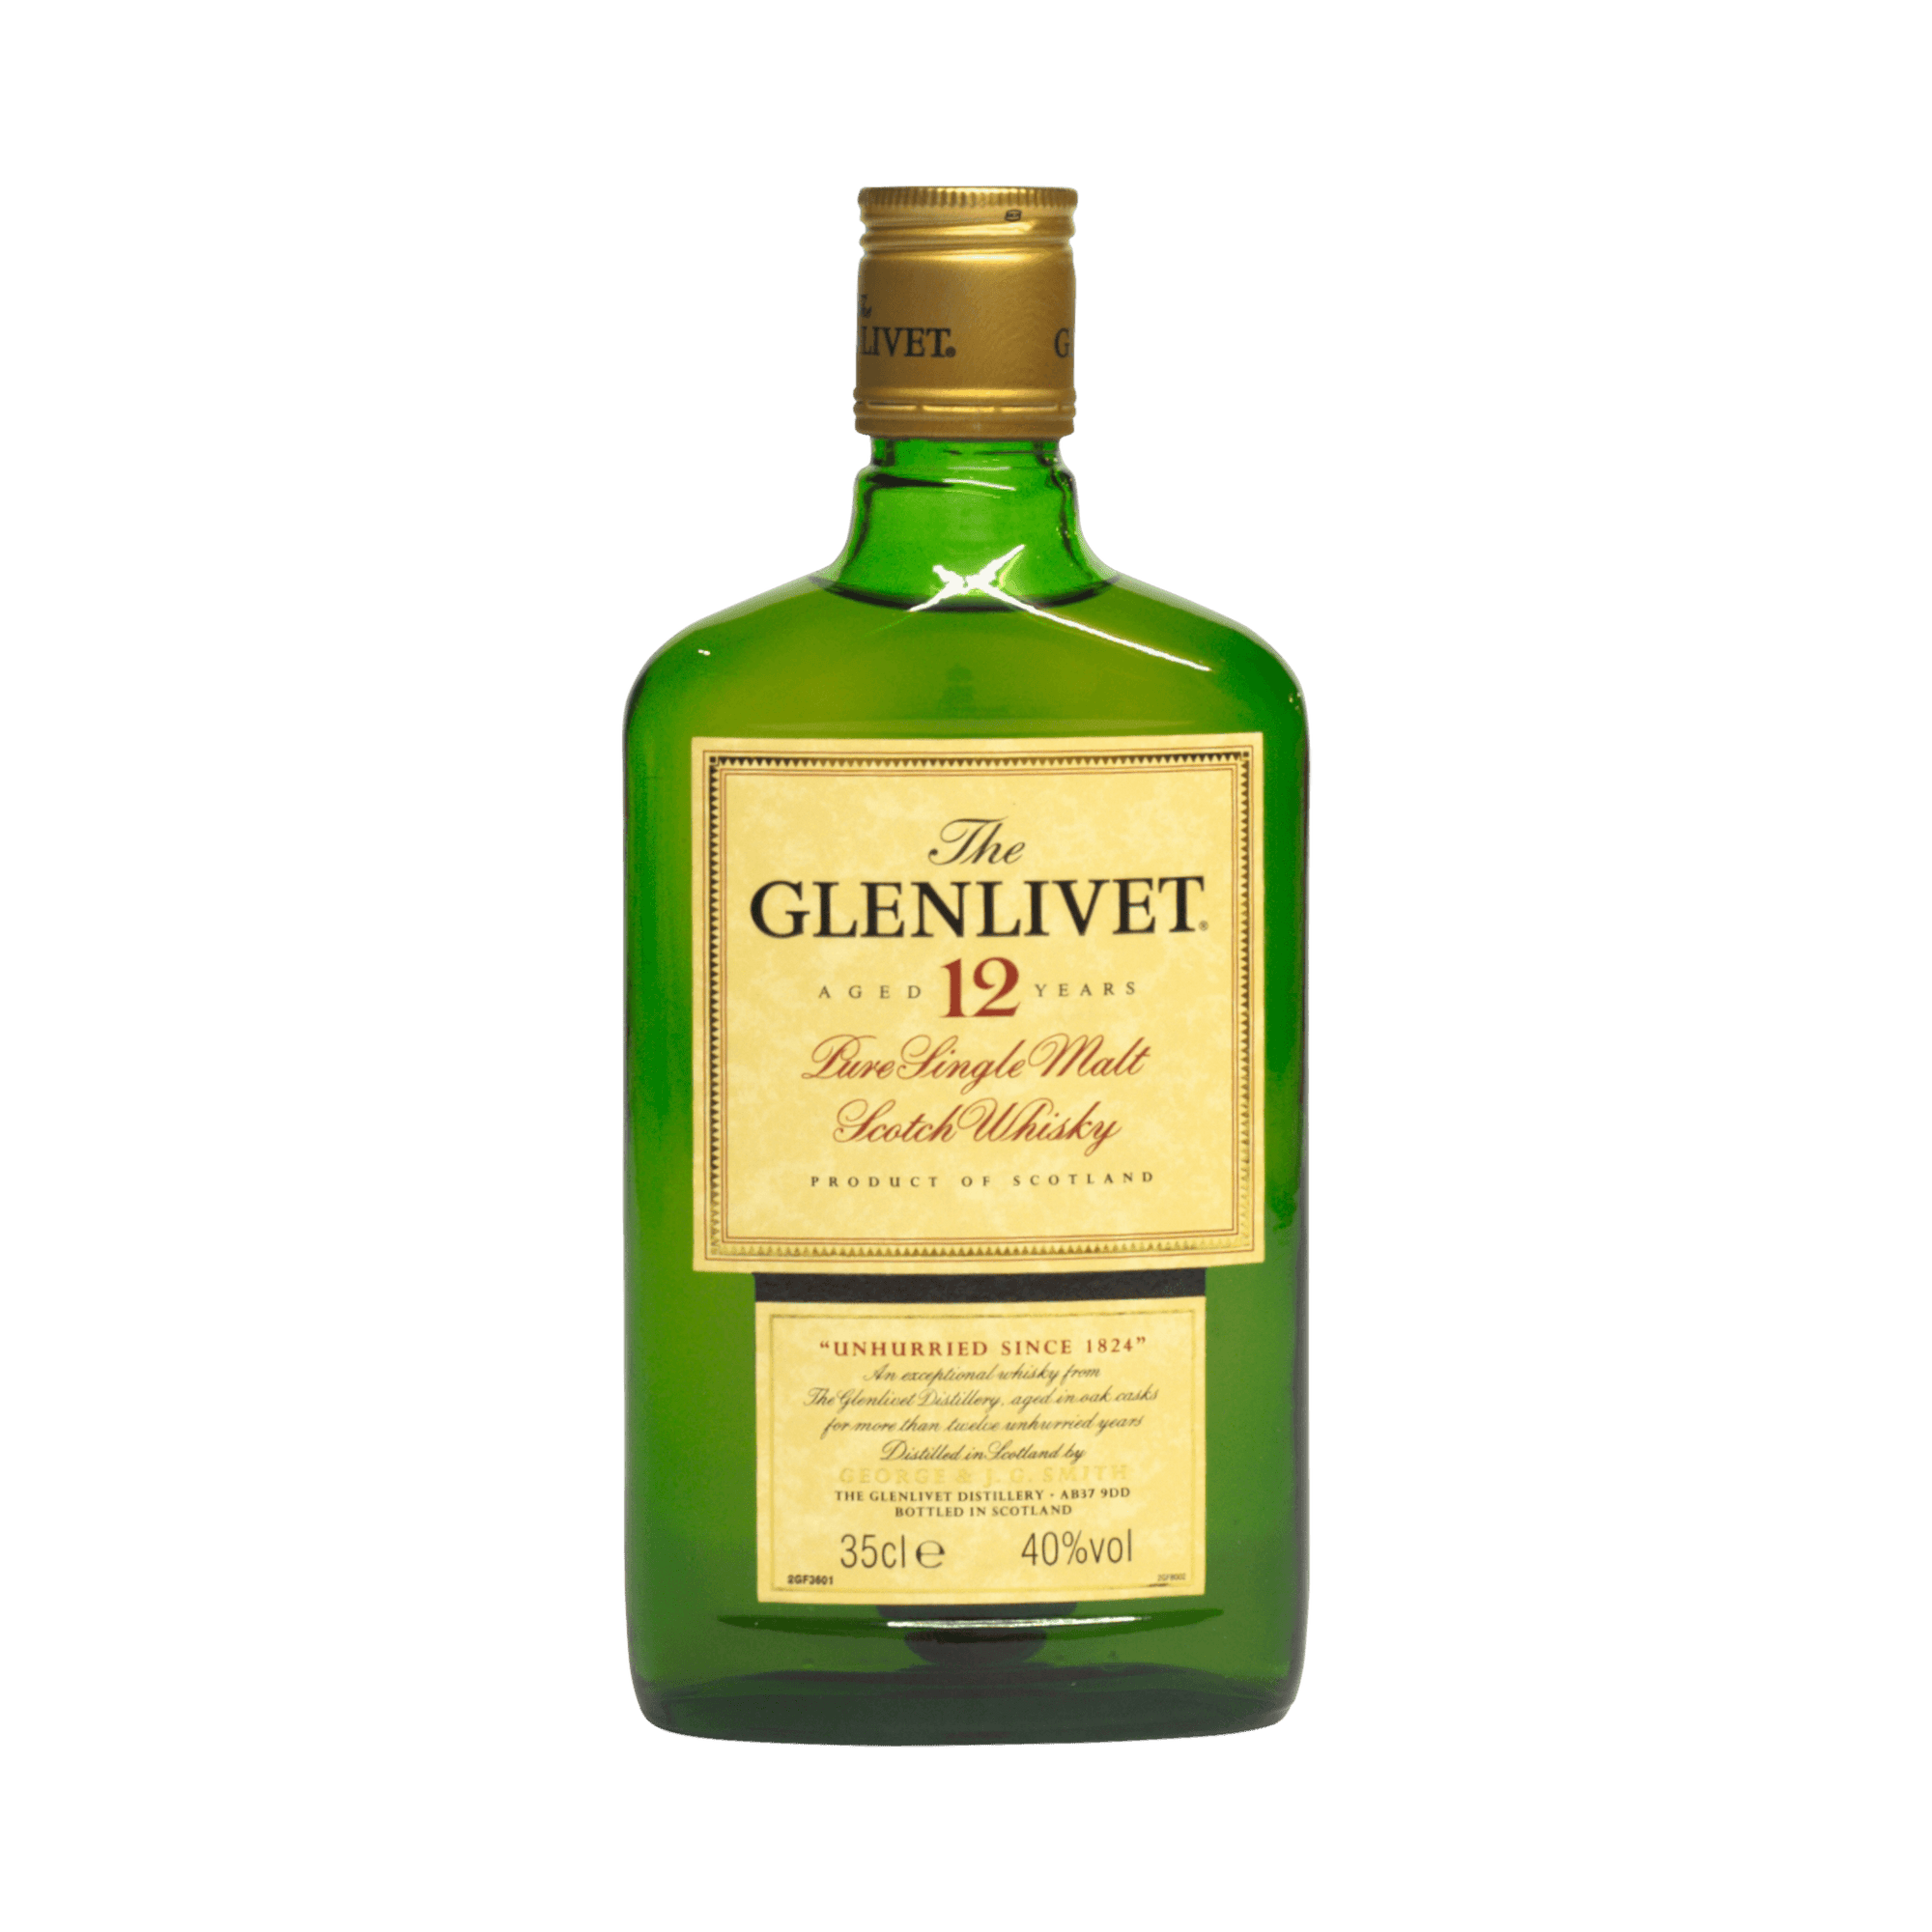 Glenlivet 12 Year Old George and JG Smith 40.00% 35cl